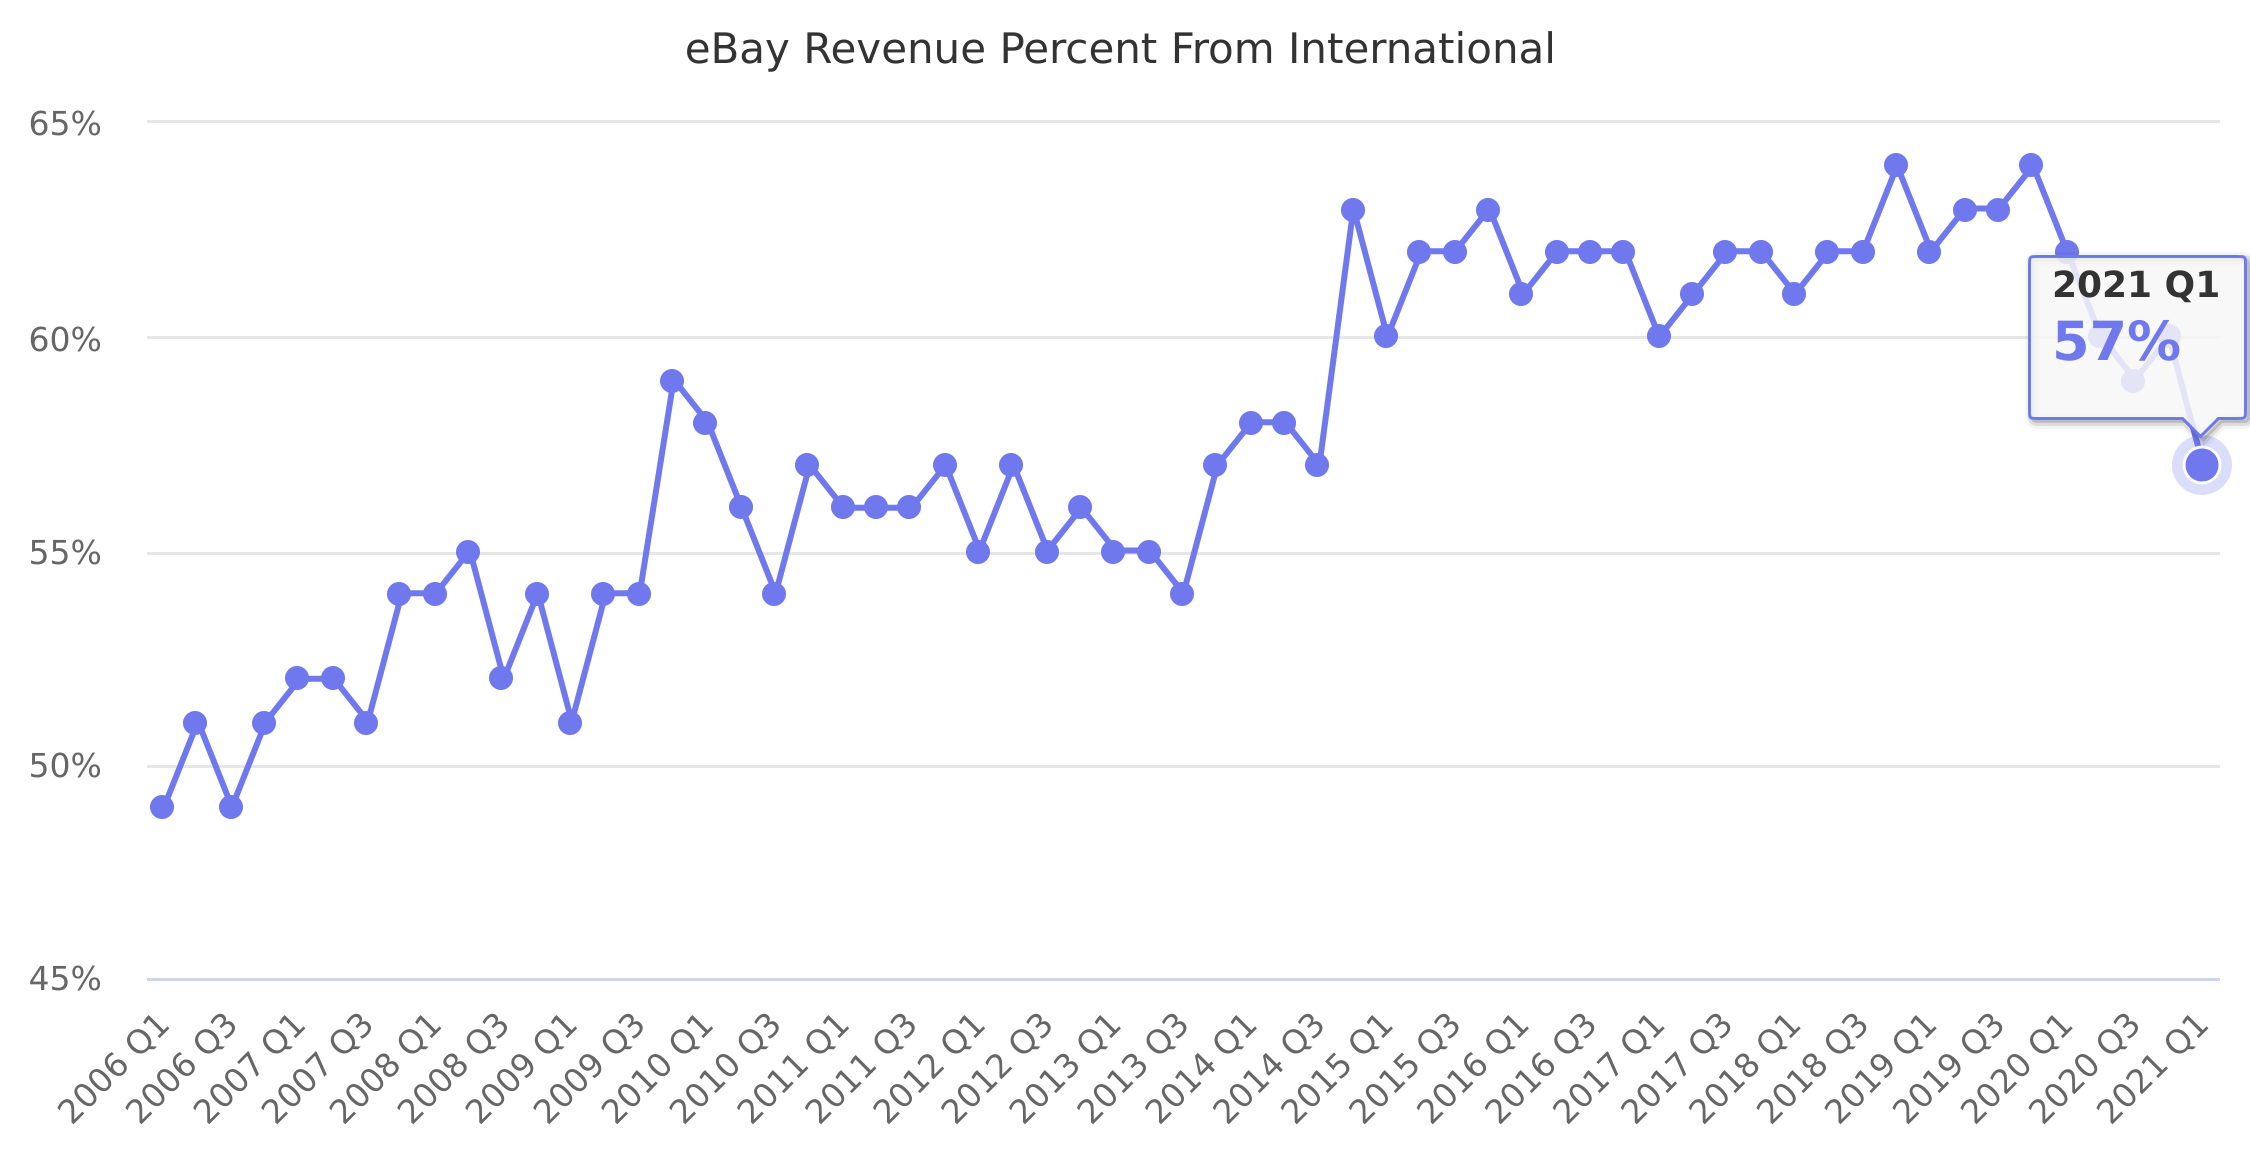 eBay Revenue Percent From International 2006-2017